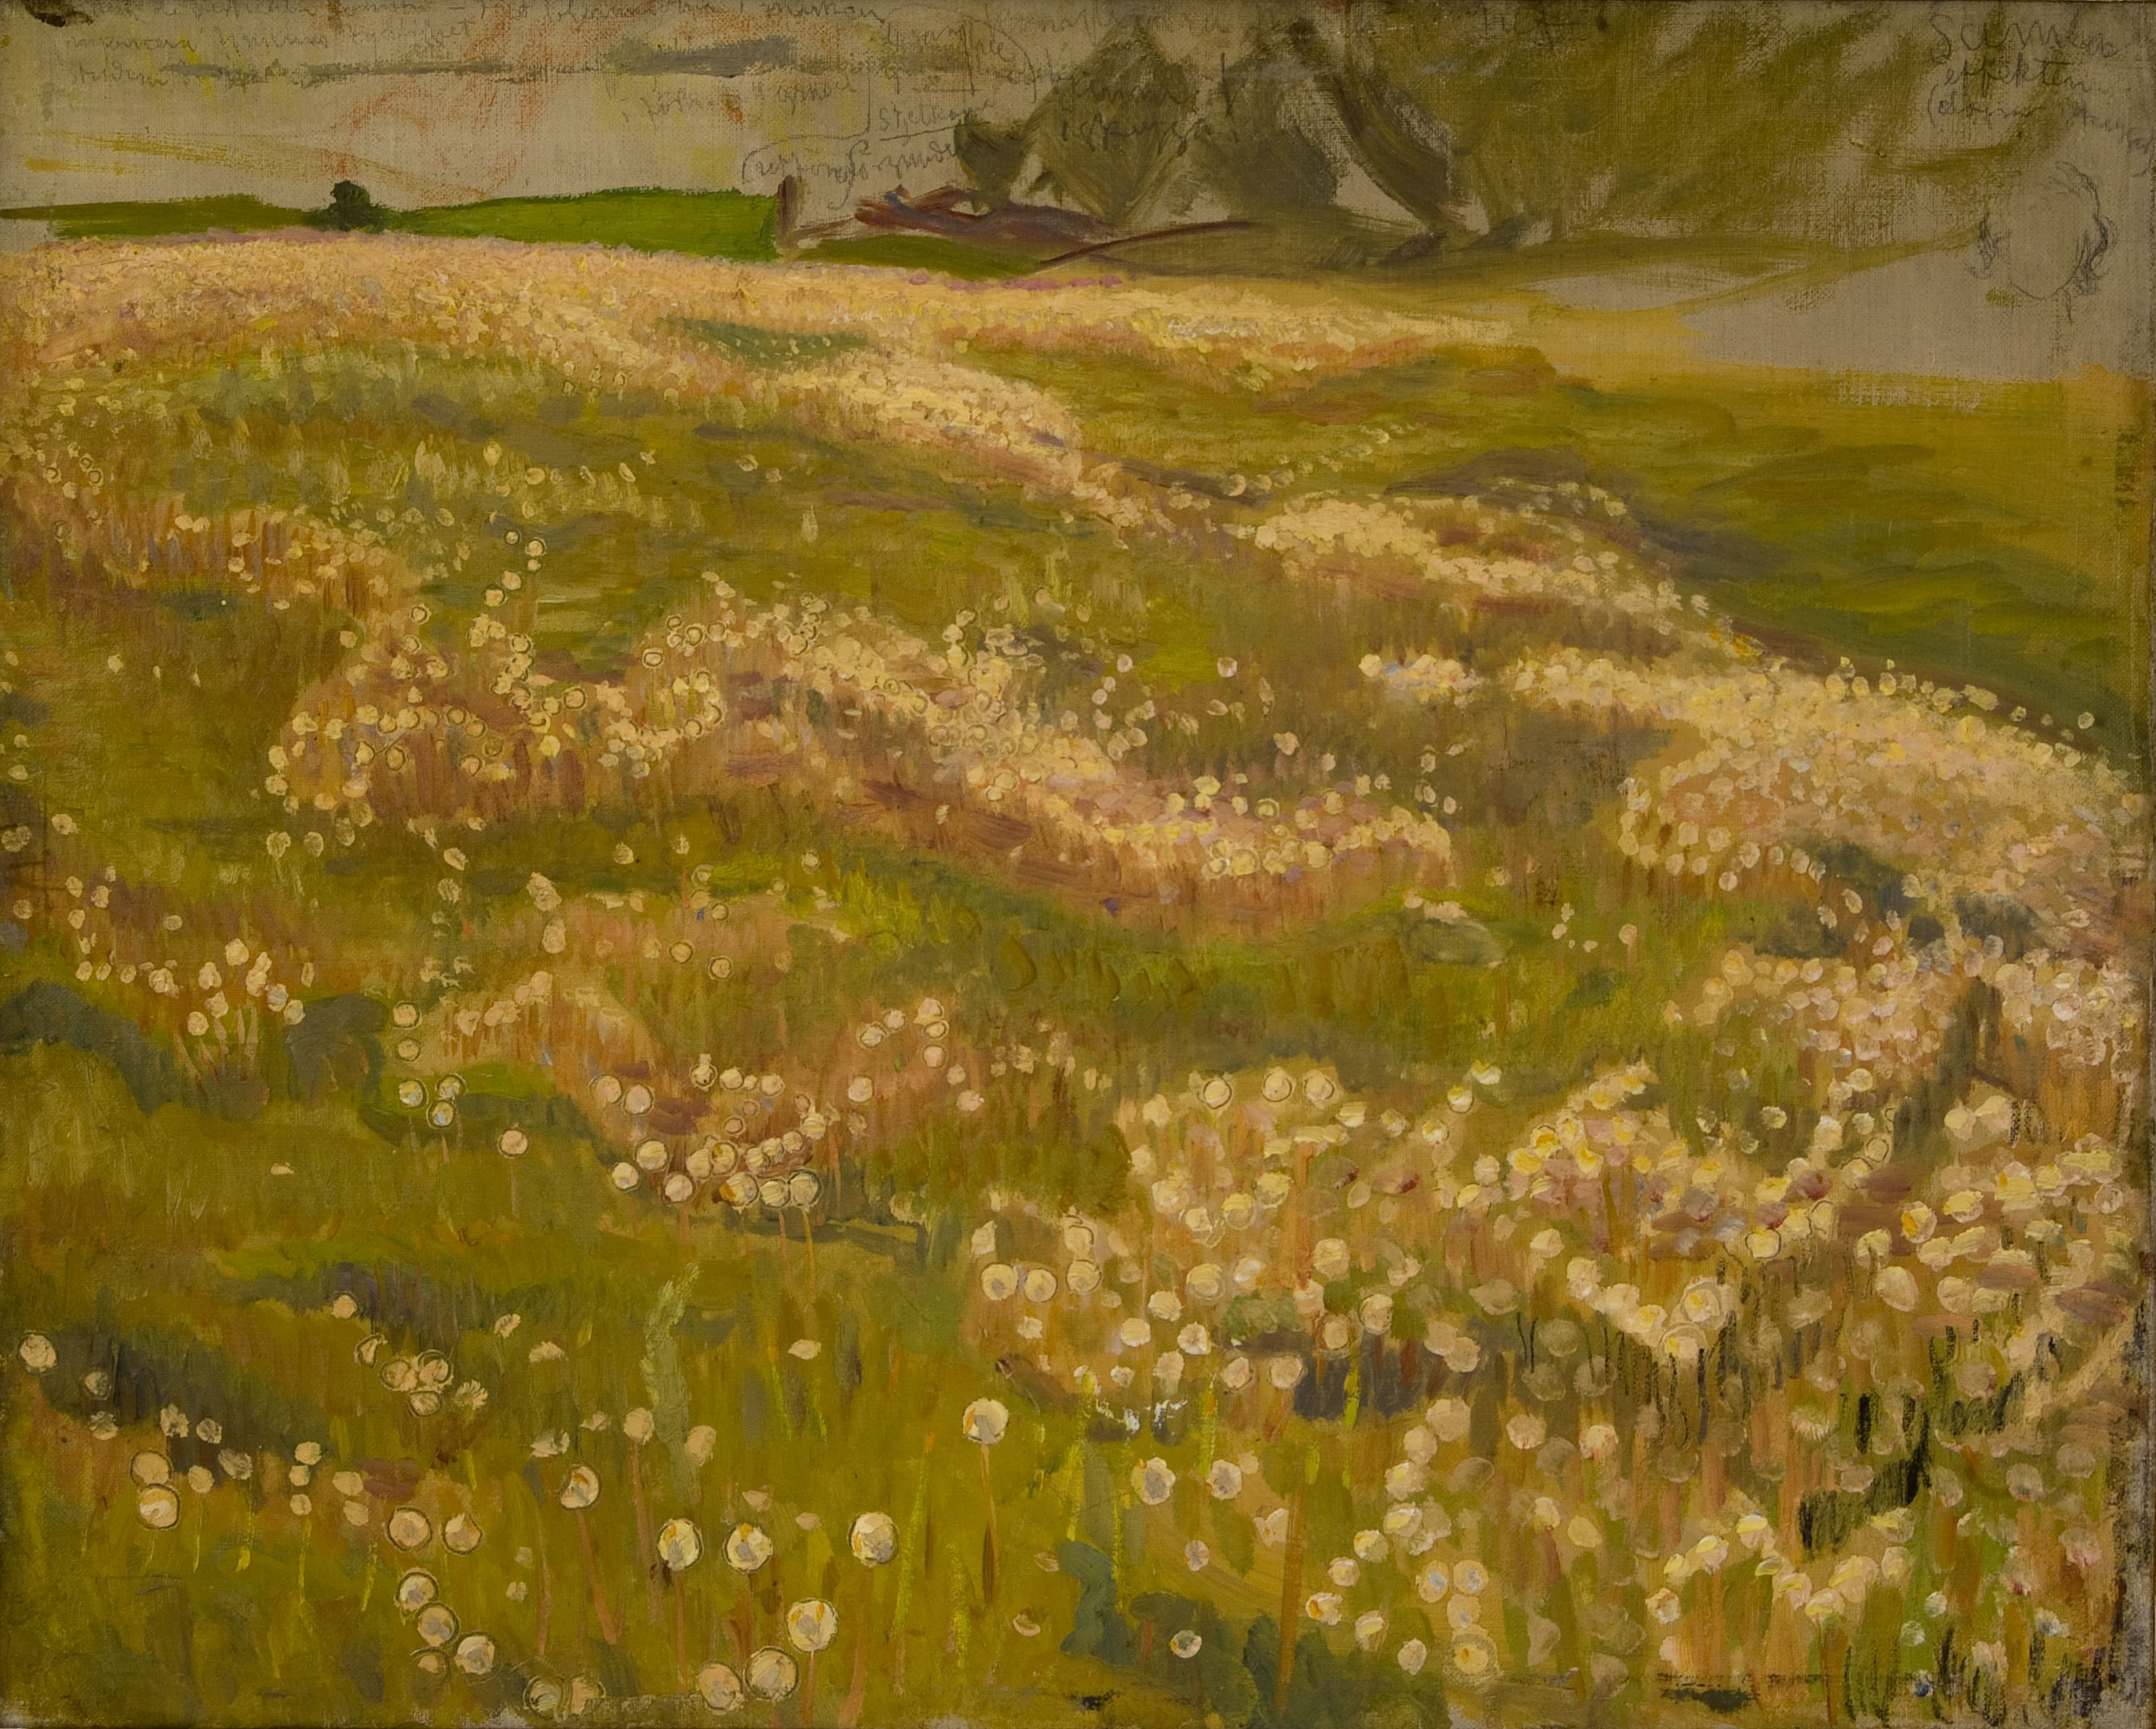 Richard Bergh: Maskrosäng, skiss, 1897